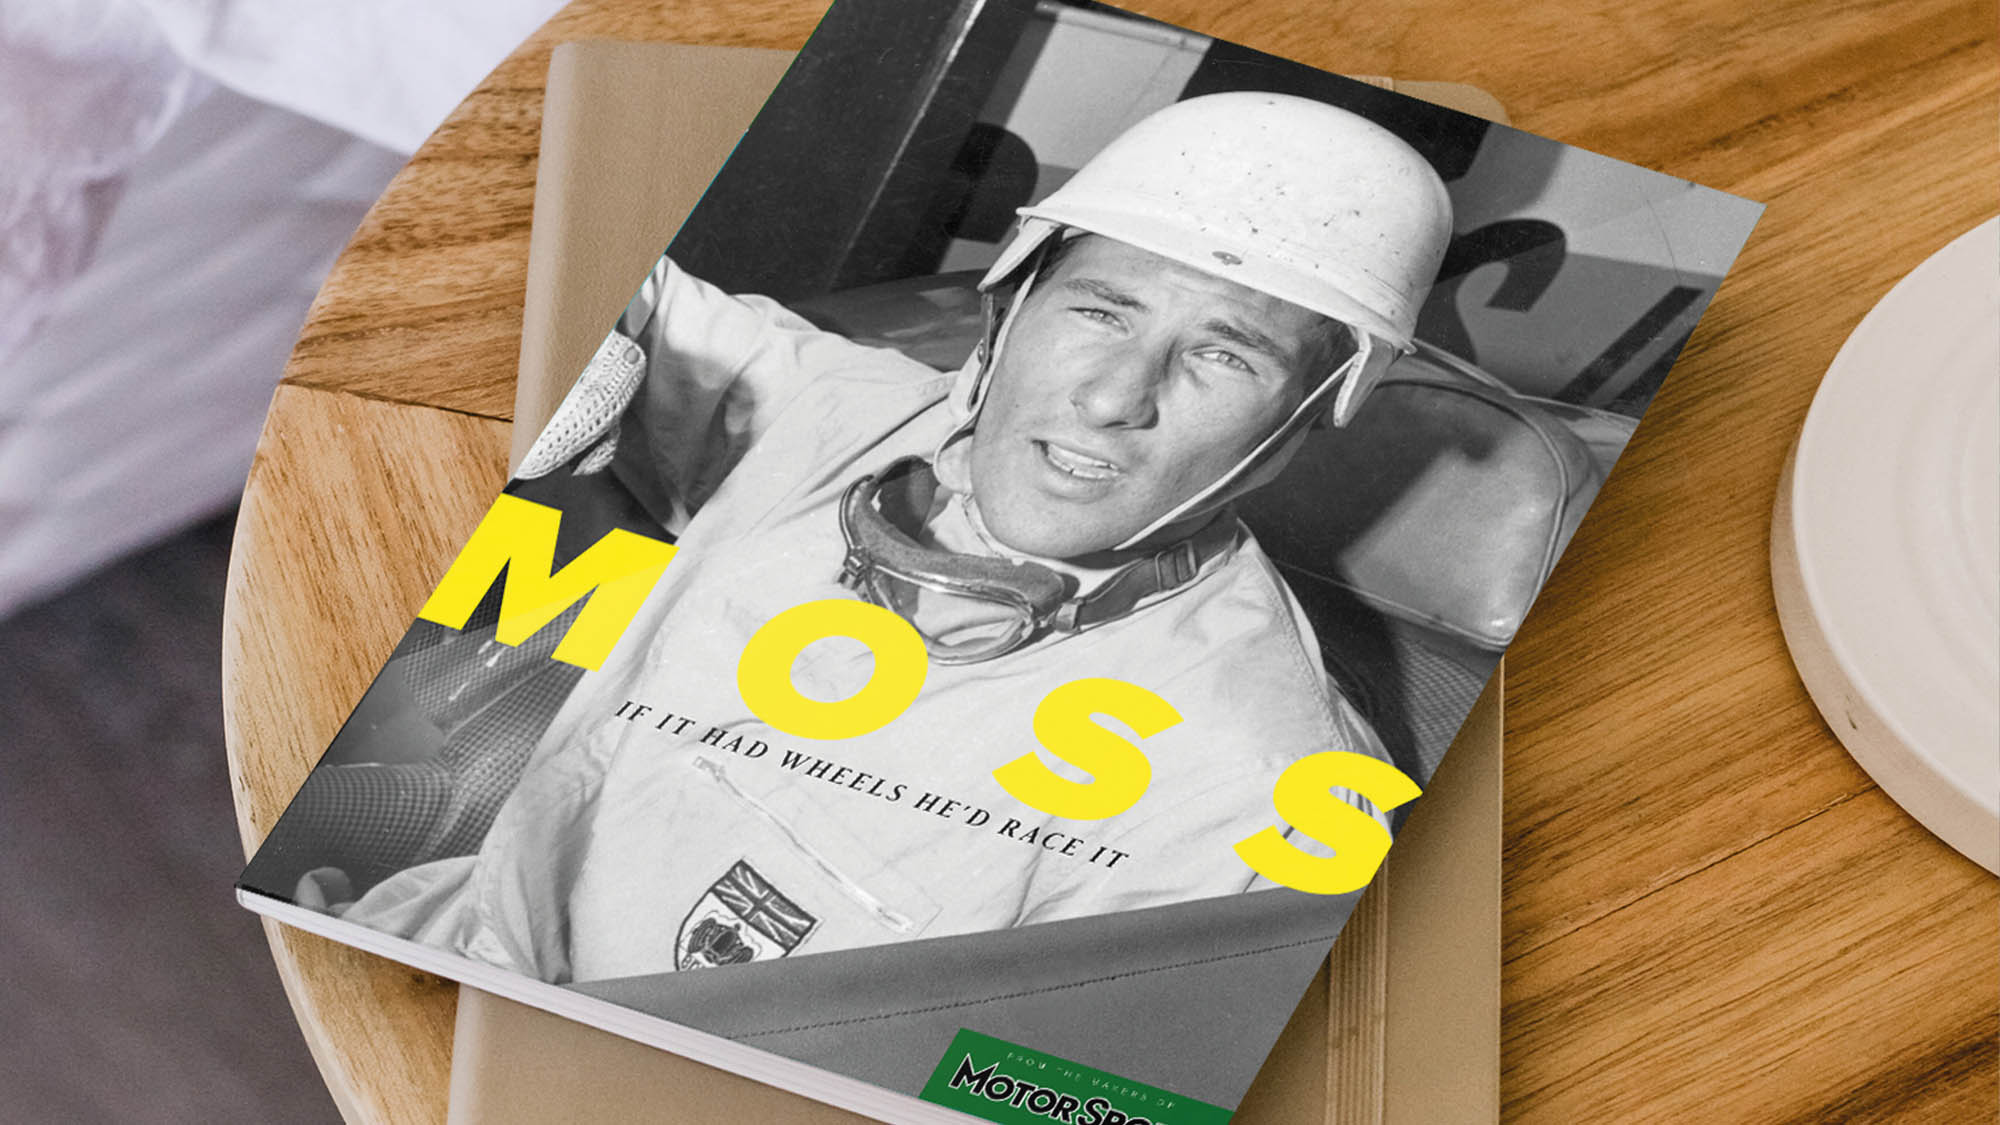 Stirling Moss: 'If It Had Wheels, He'd Race It'. Available now